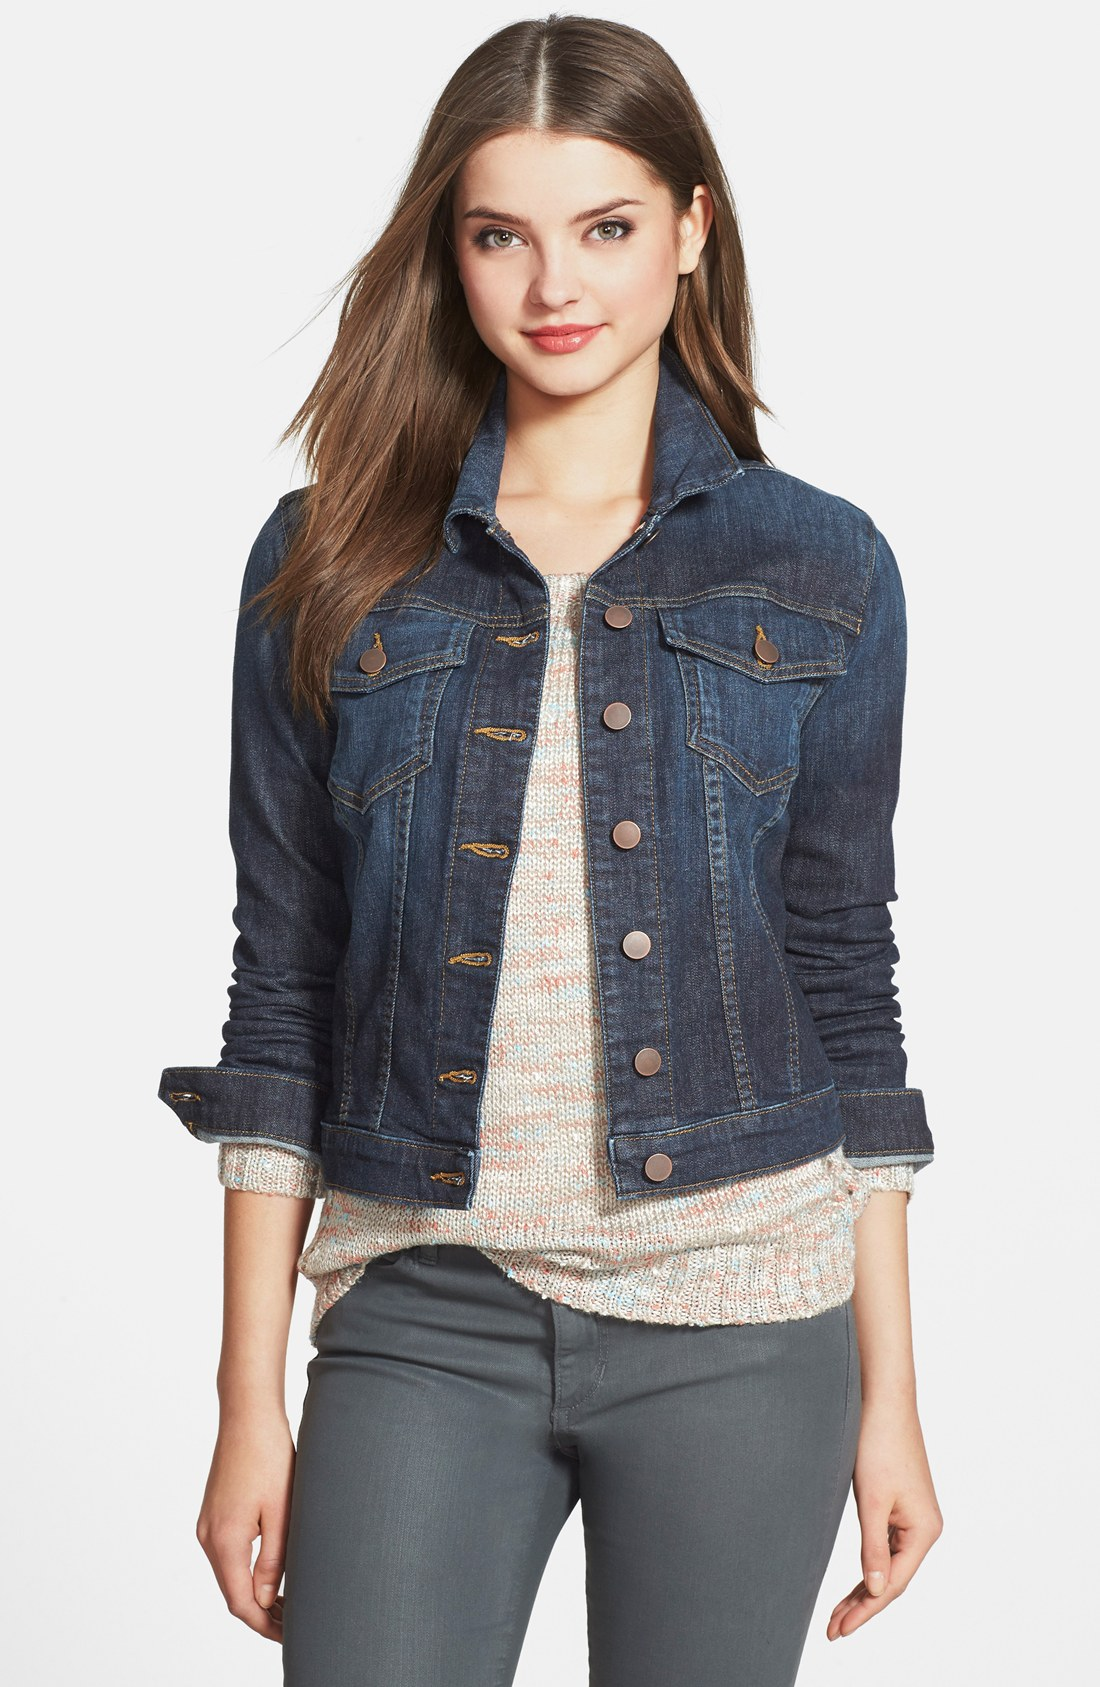 Shop for womens denim jacket online at Target. Free shipping on purchases over $35 and save 5% every day with your Target REDcard.